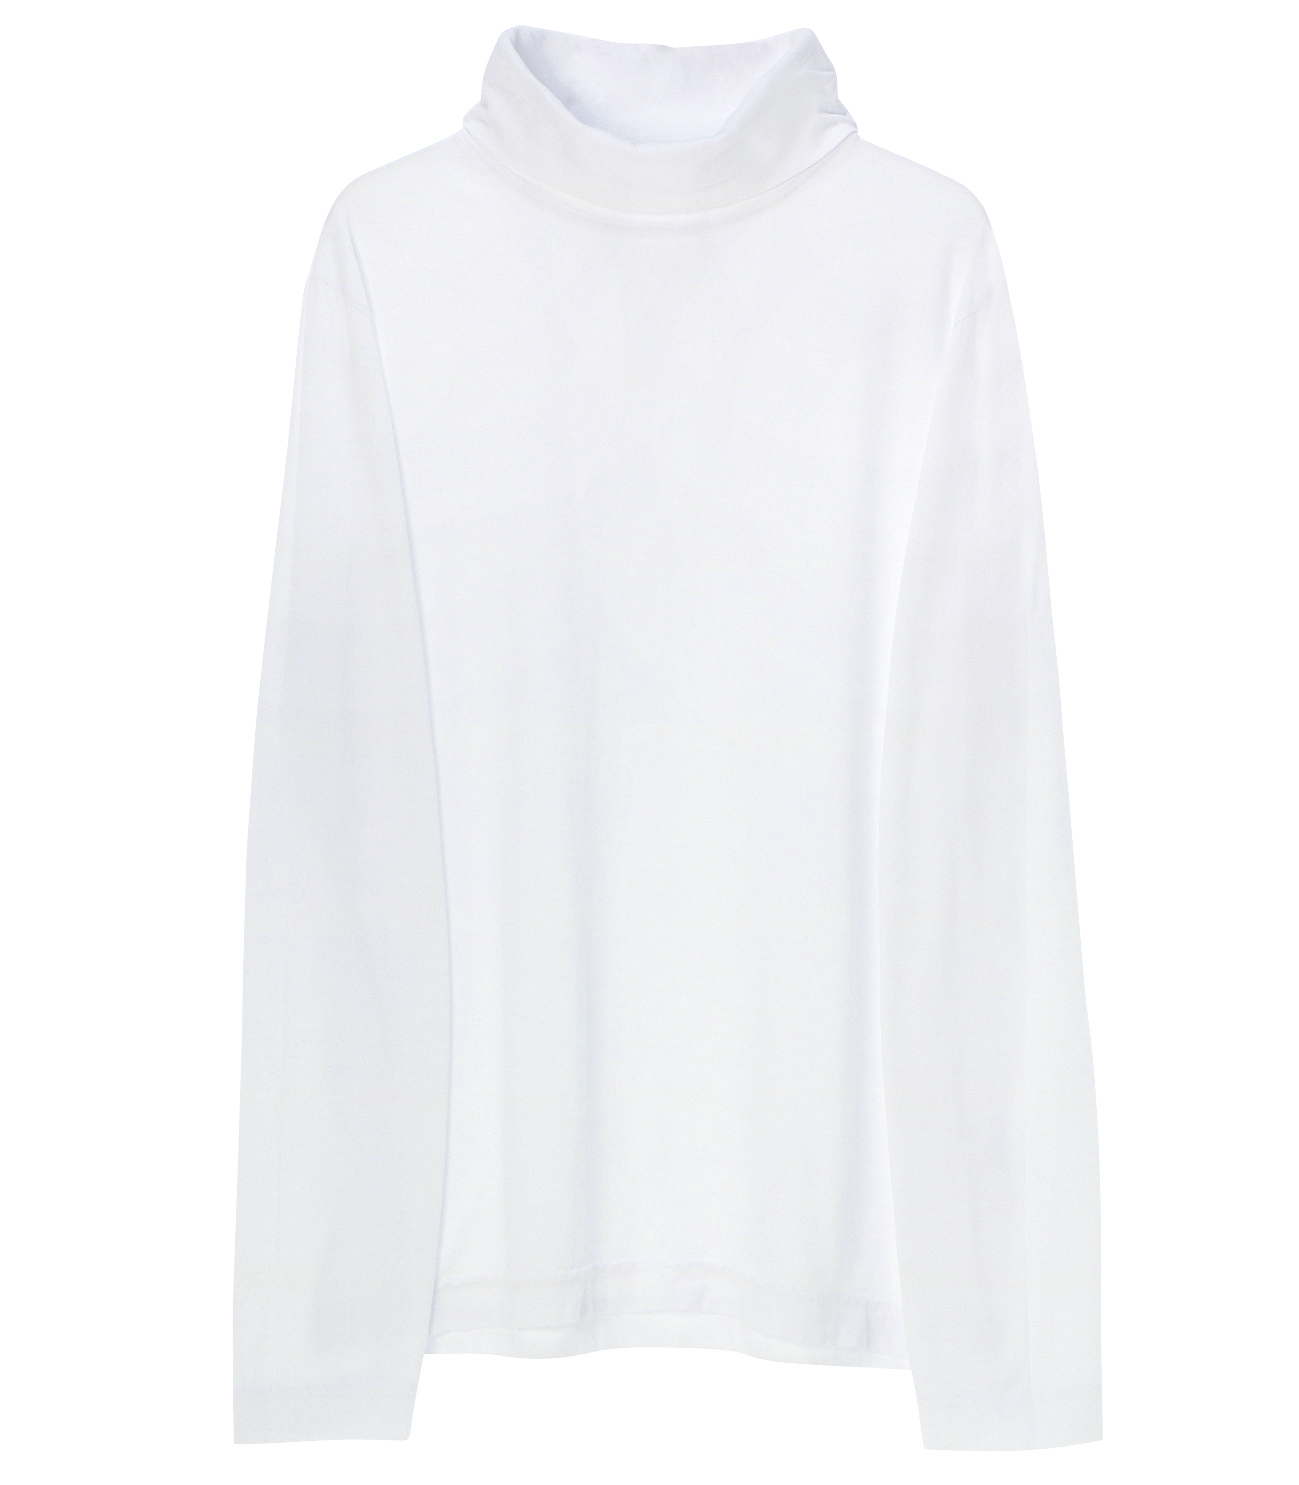 Men's sanded jersey turtleneck 詳細画像 white 1